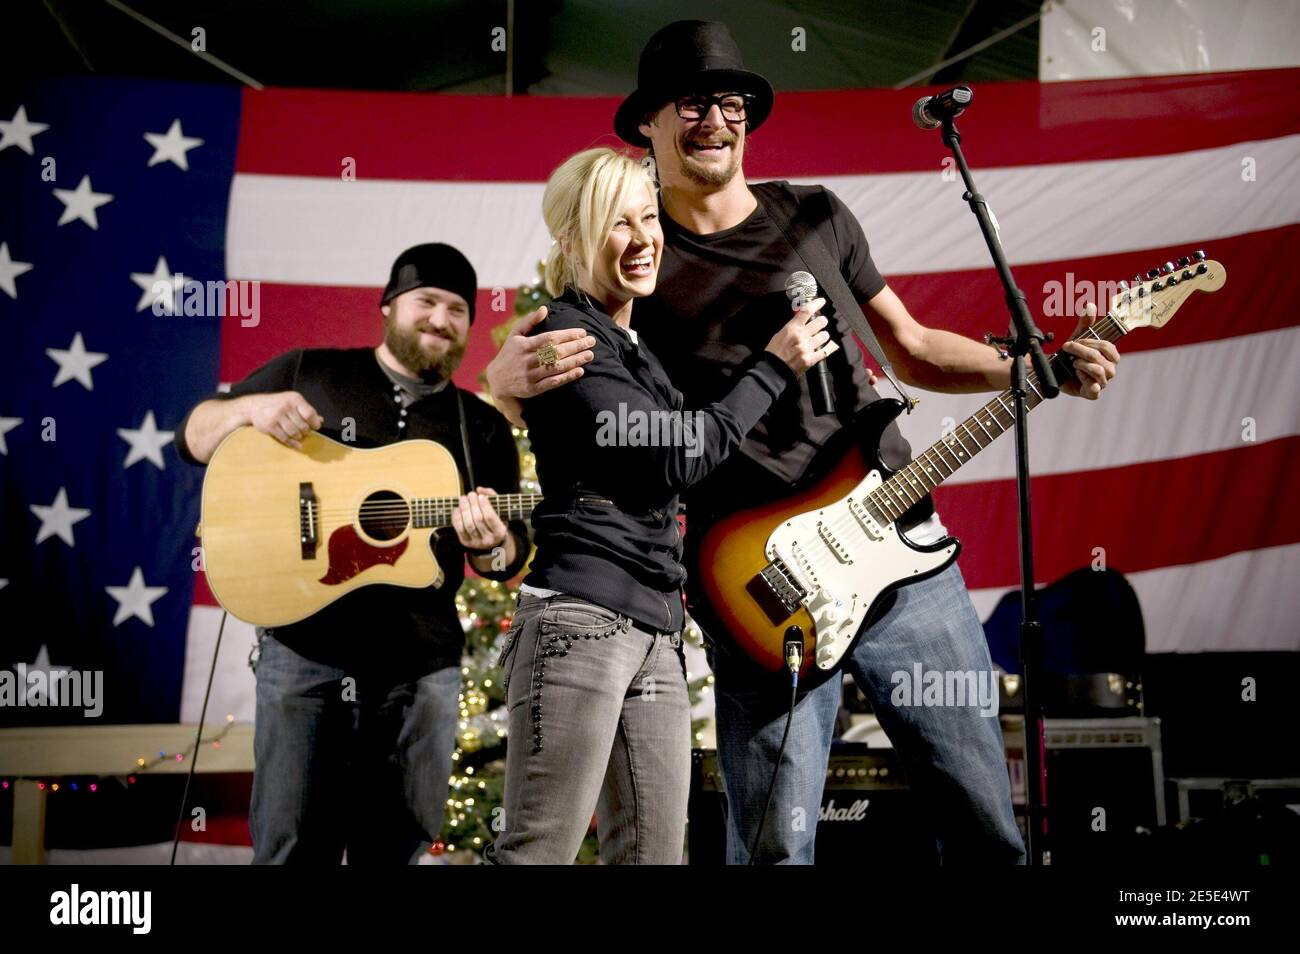 (L-R) Zack Brown, American Idol contestan Kellie Pickler and Kid Rock entertain the troops at Bagram Air Base in Kandahar, Afghanistan on December 17, 2008, during the 2008 USO Holiday Tour. Photo by Chad J. McNeeley/DOD/ABACAPRESS.COM Stock Photo